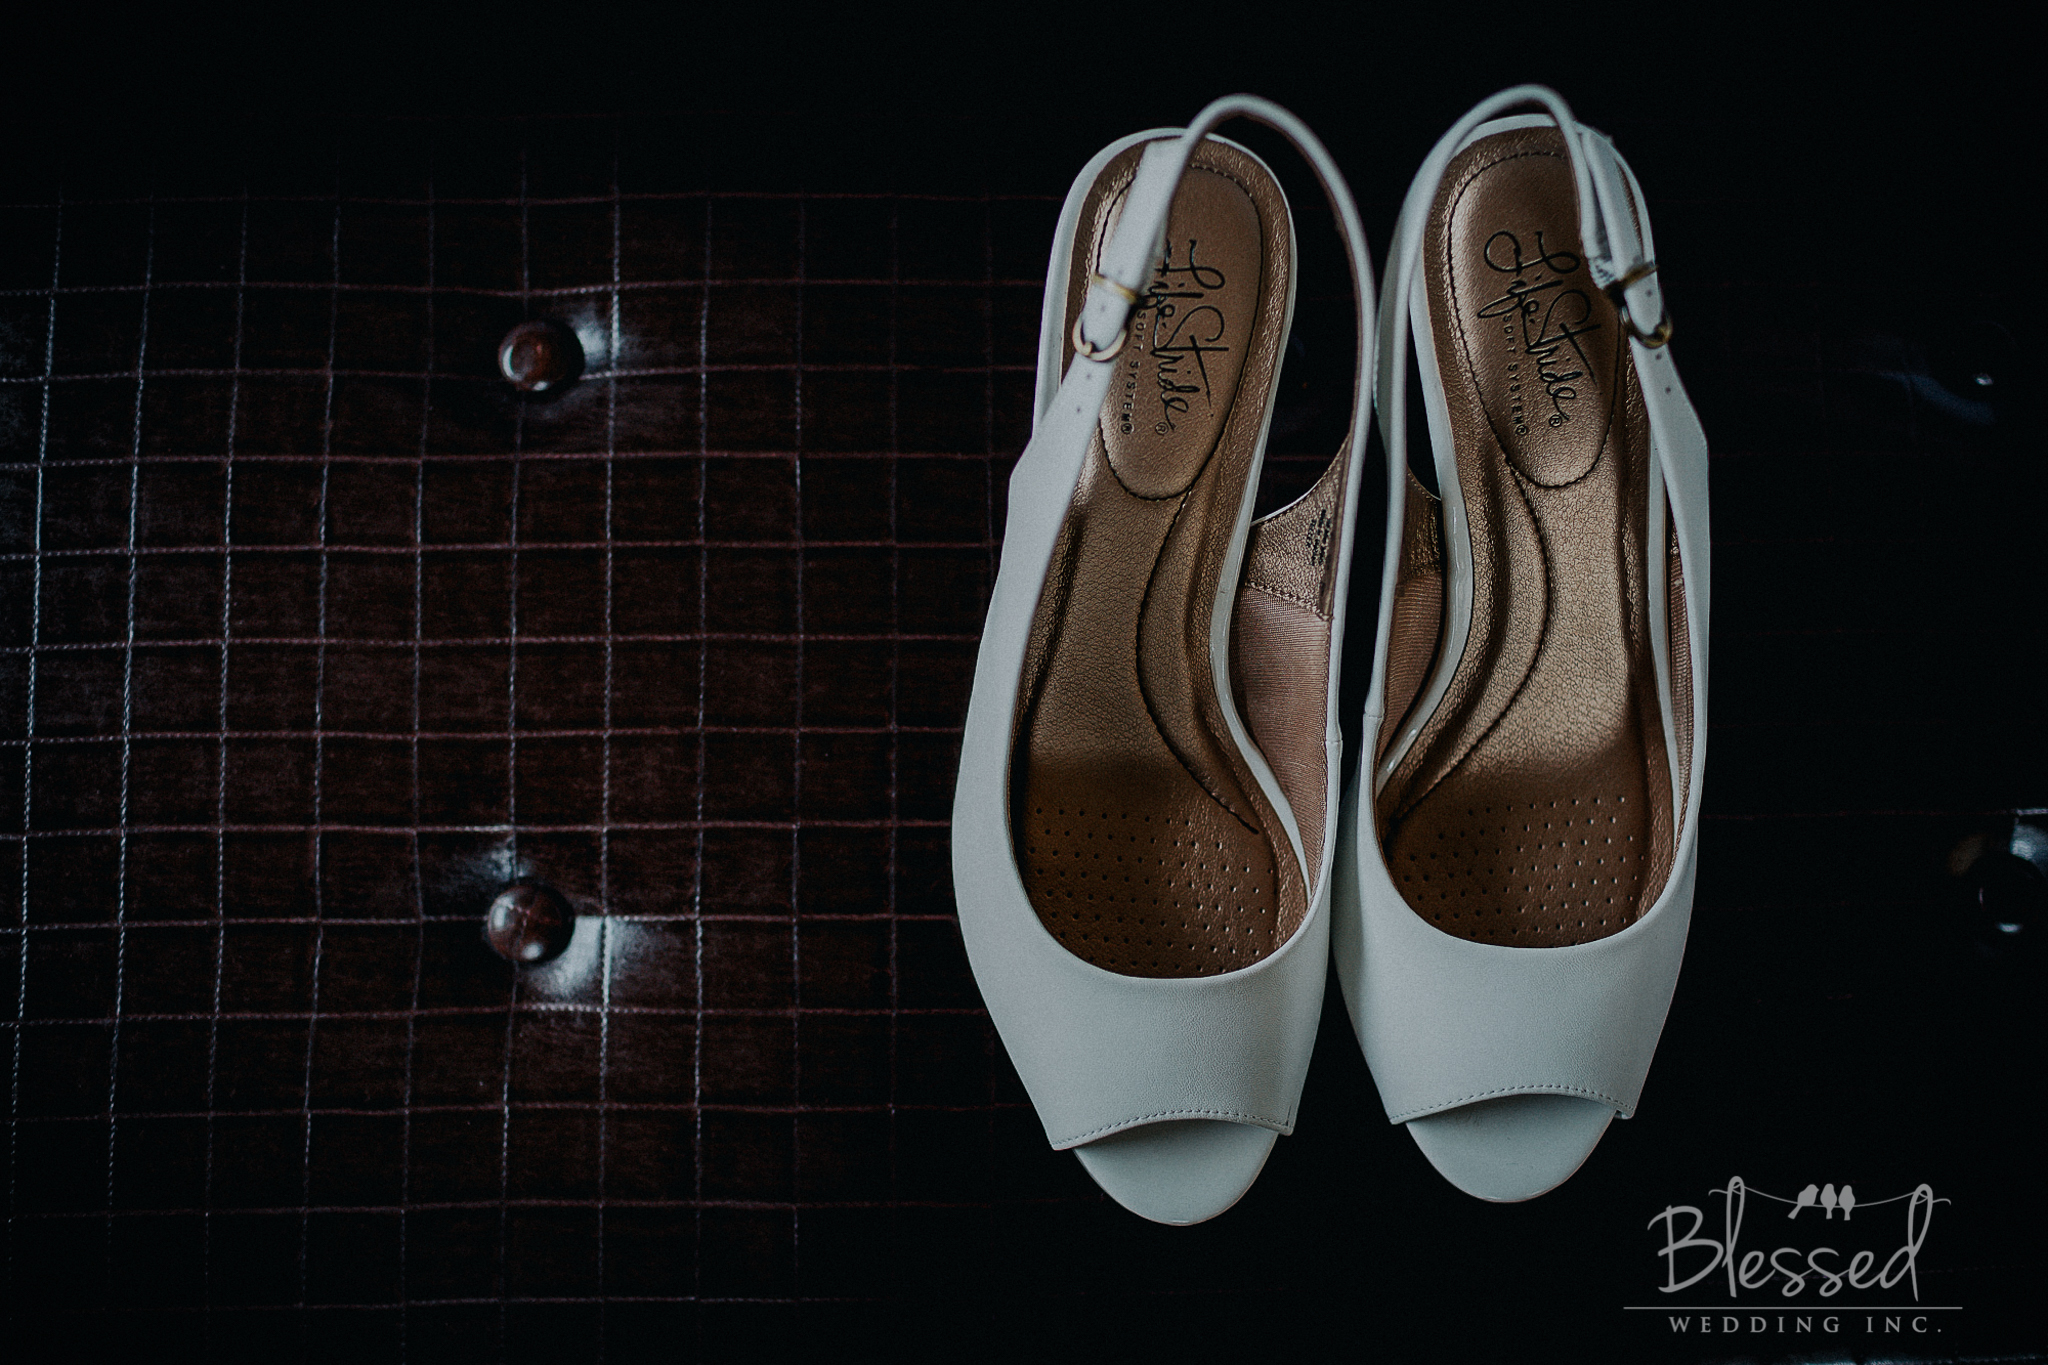 Destination Wedding Photography Minnesota By Blessed Wedding Photographers-4.jpg